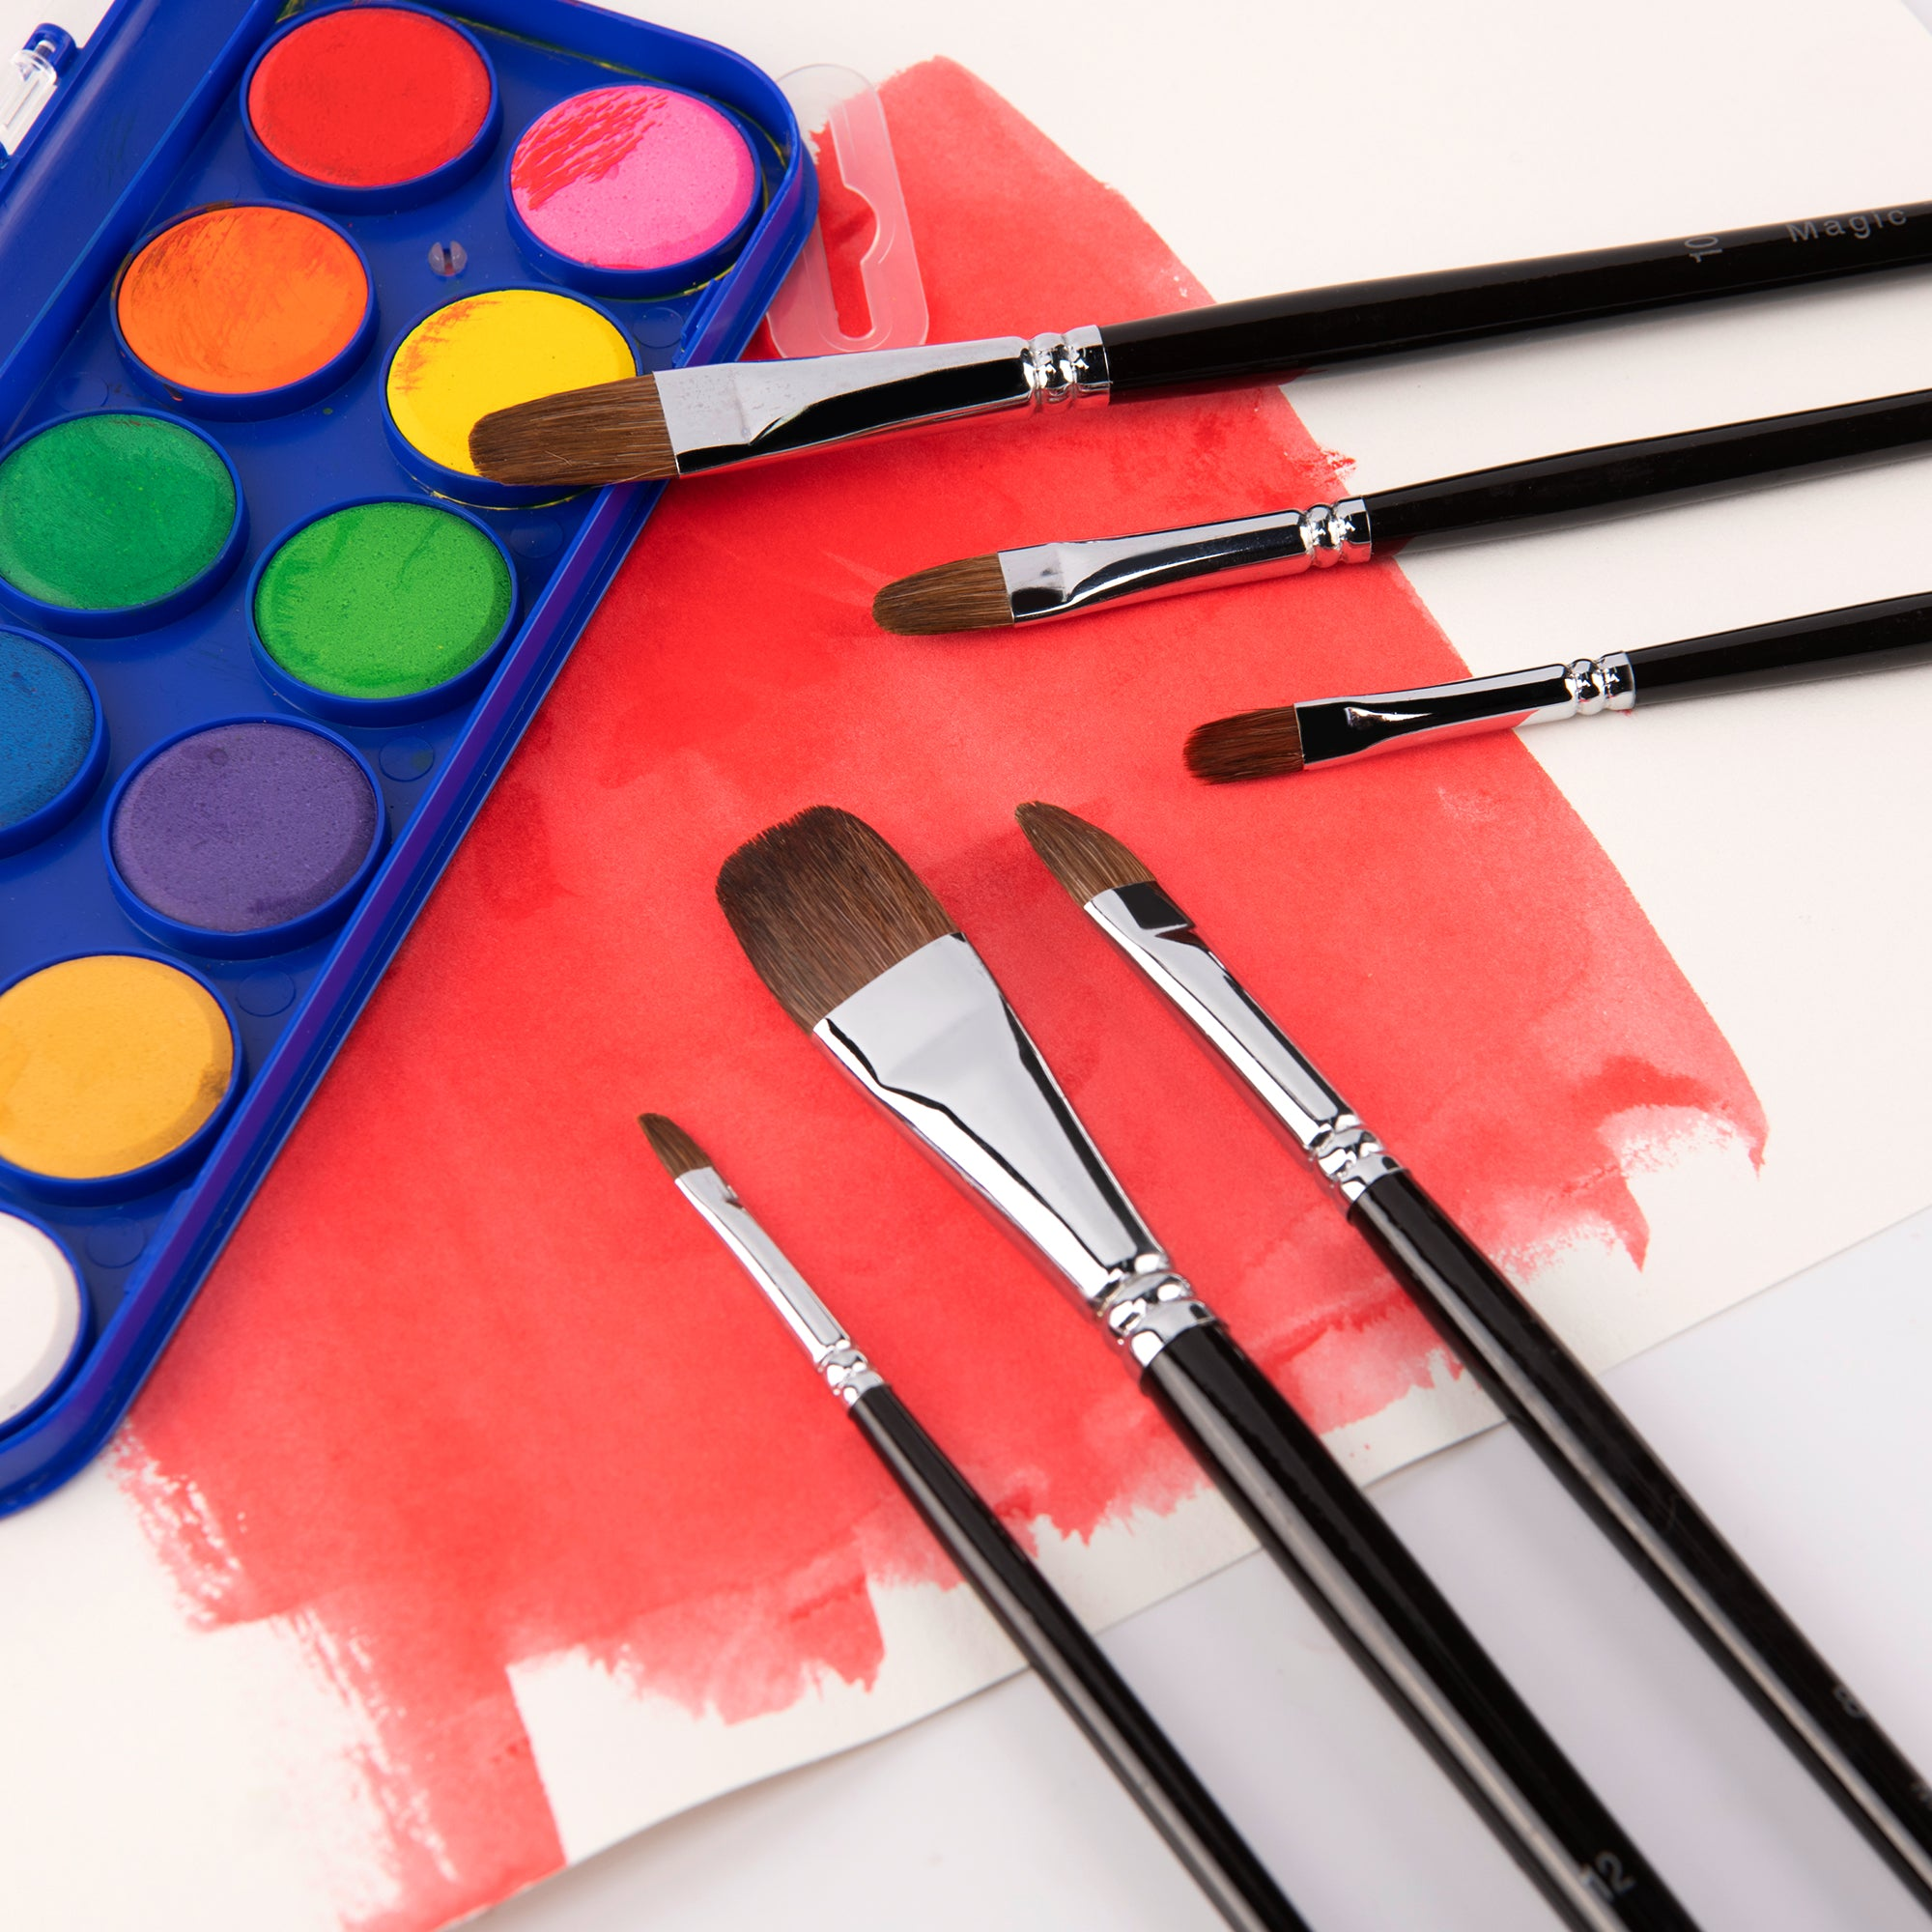 Magic Touches Artist Paint Brushes Red Sable (Weasel Hair) , Filbert Paint Brush Set for Acrylic, Oil, Gouche and Watercolor Painting